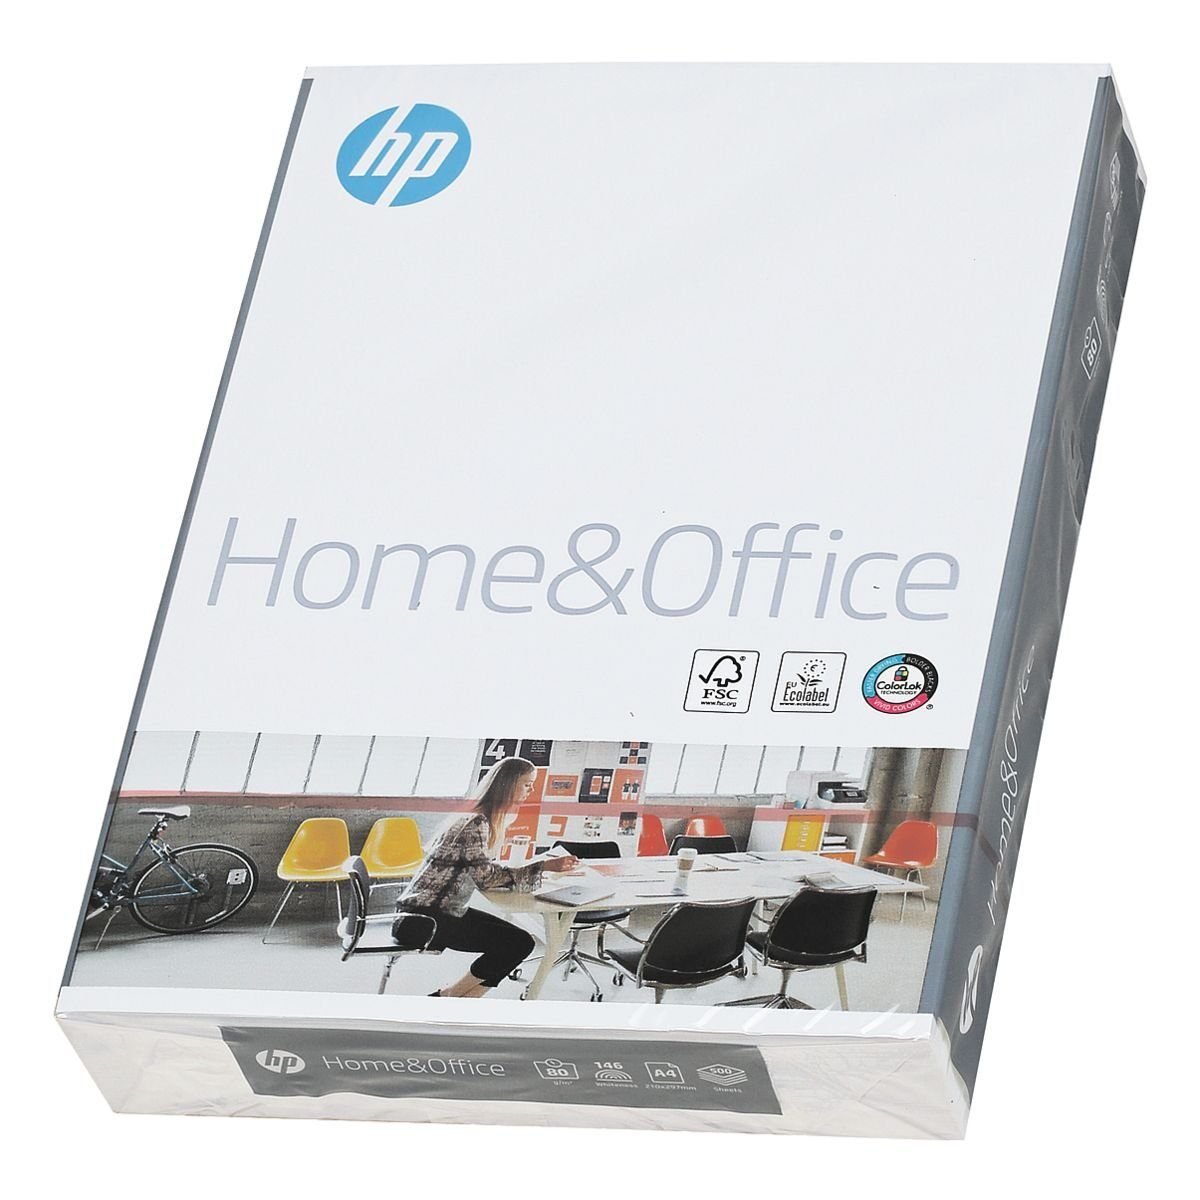 HP Multifunktionales Druckerpapier »HP Home & Office«